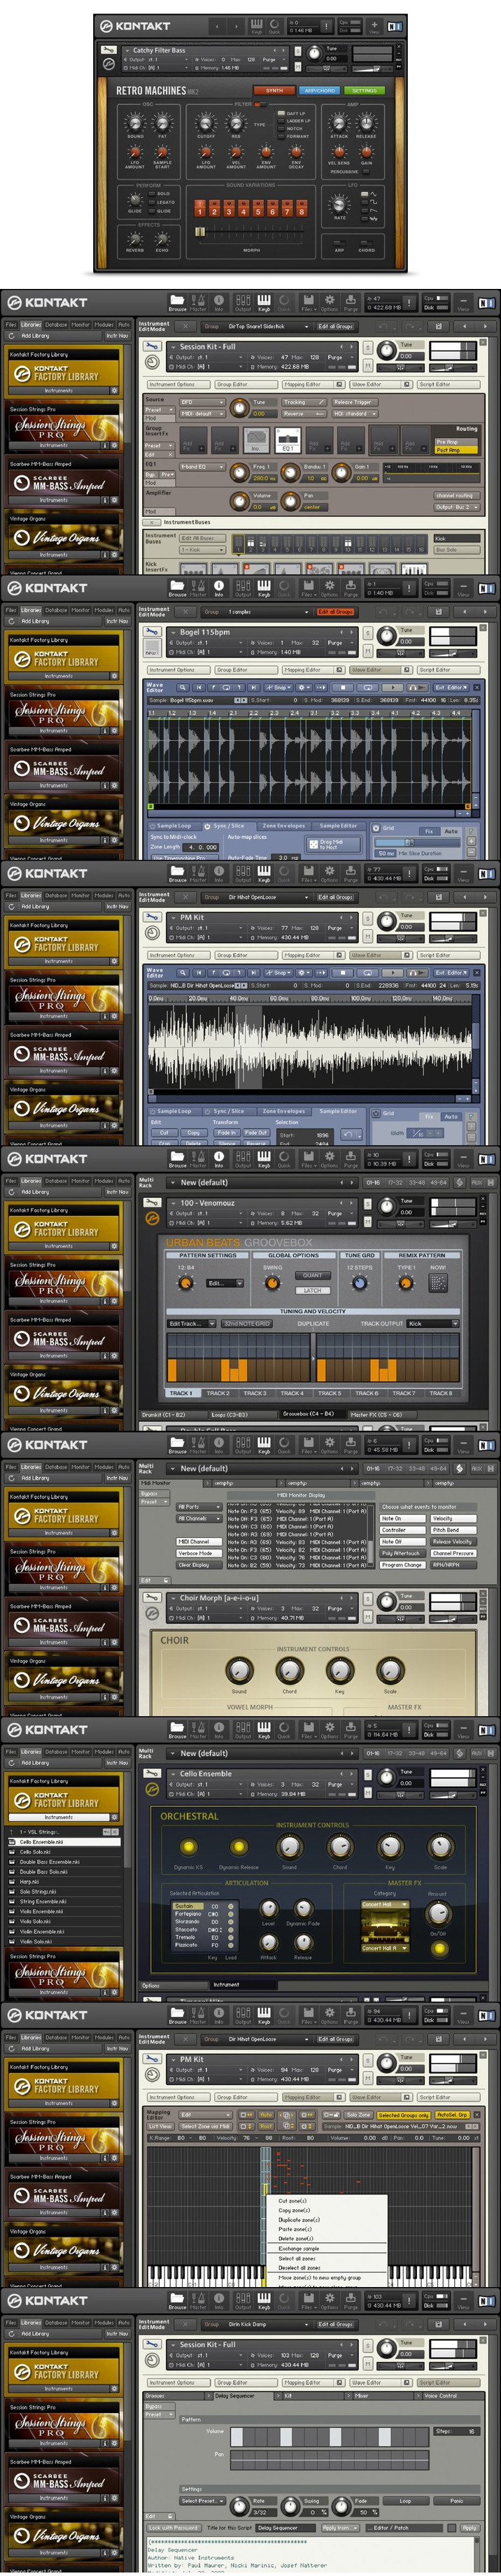 Kontakt Player 4 Torrent Mac Office 365